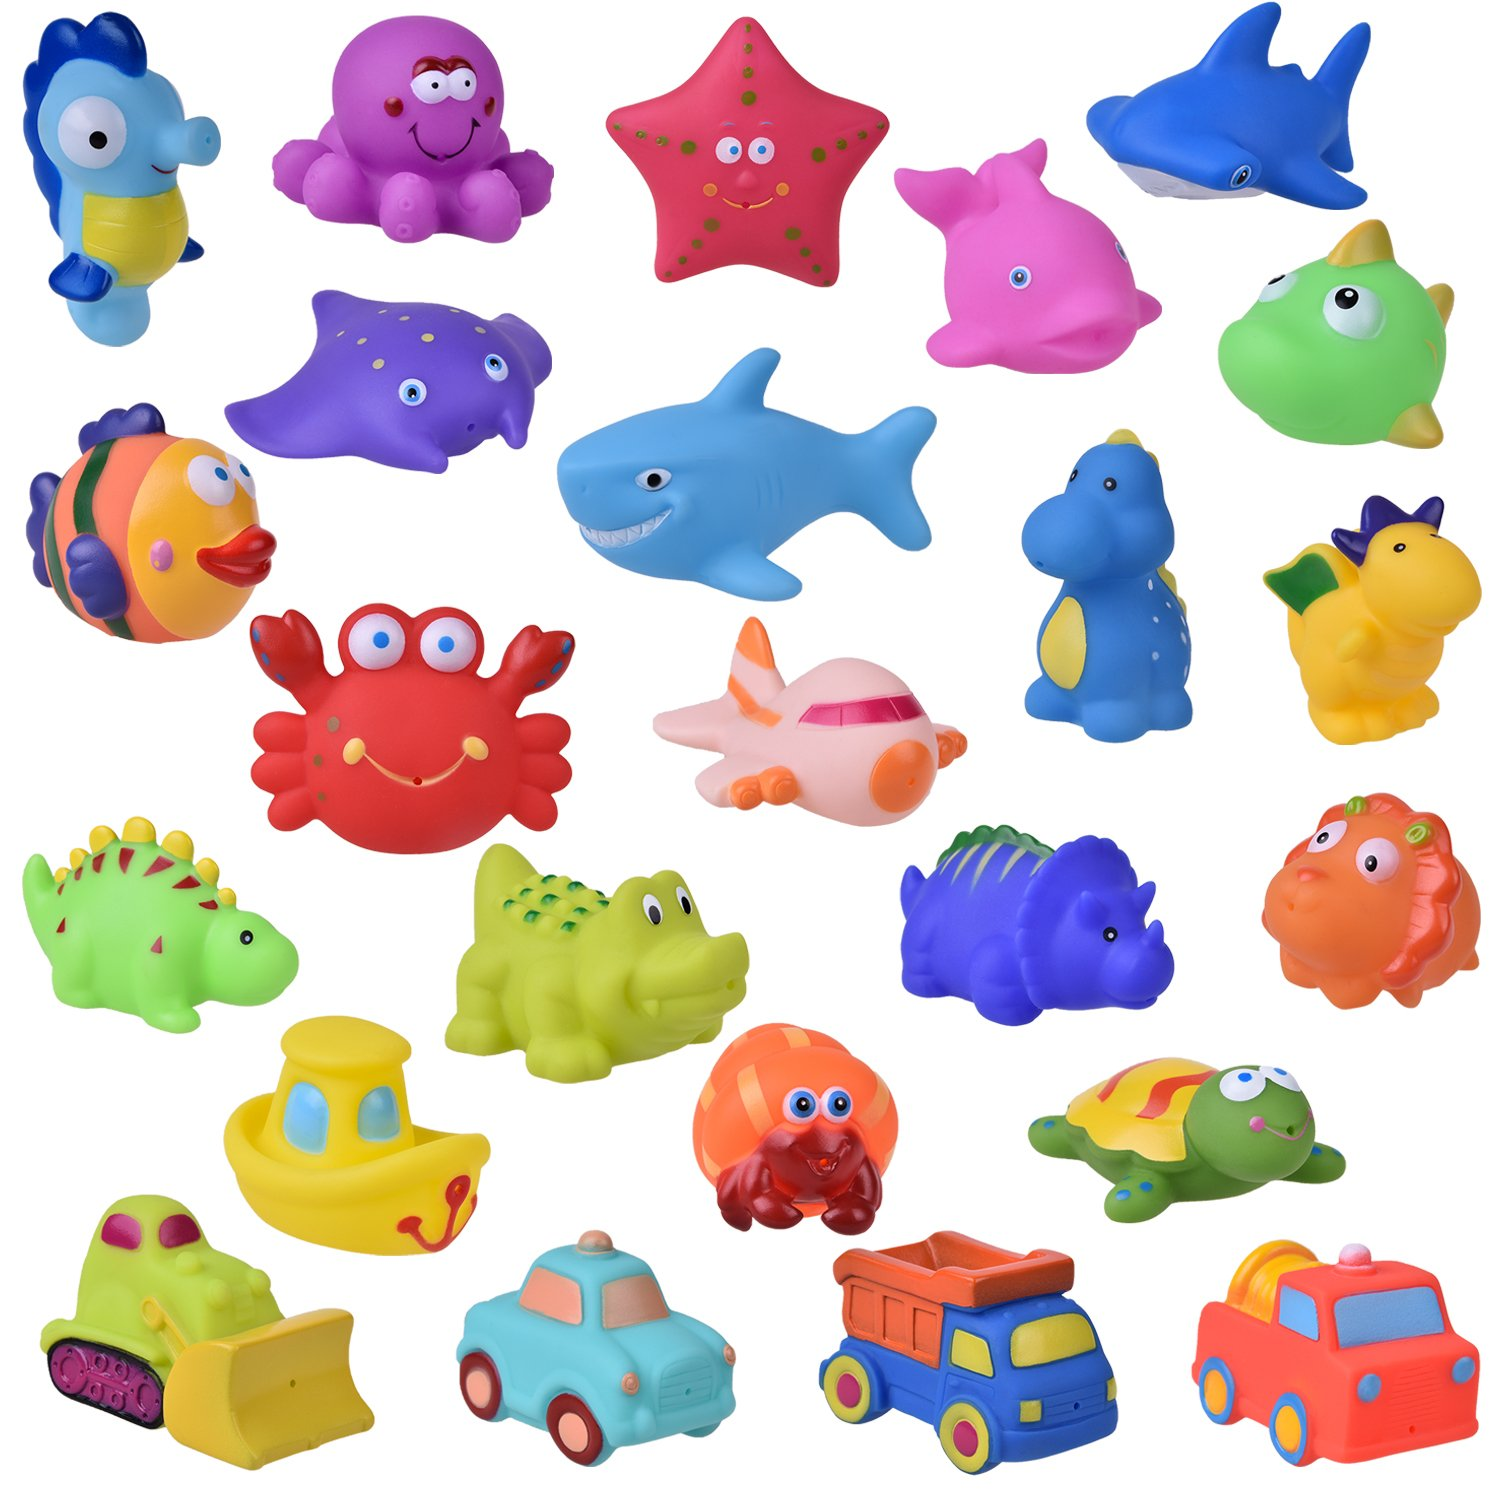 24 PCs Bath Toys for Toddlers, Sea Animals Squirter Toys Kids, Car Squirter Toys Boys, Bath Toy Organizer Included, Easter Basket Stuffers for Toddlers B07FPCM9VK